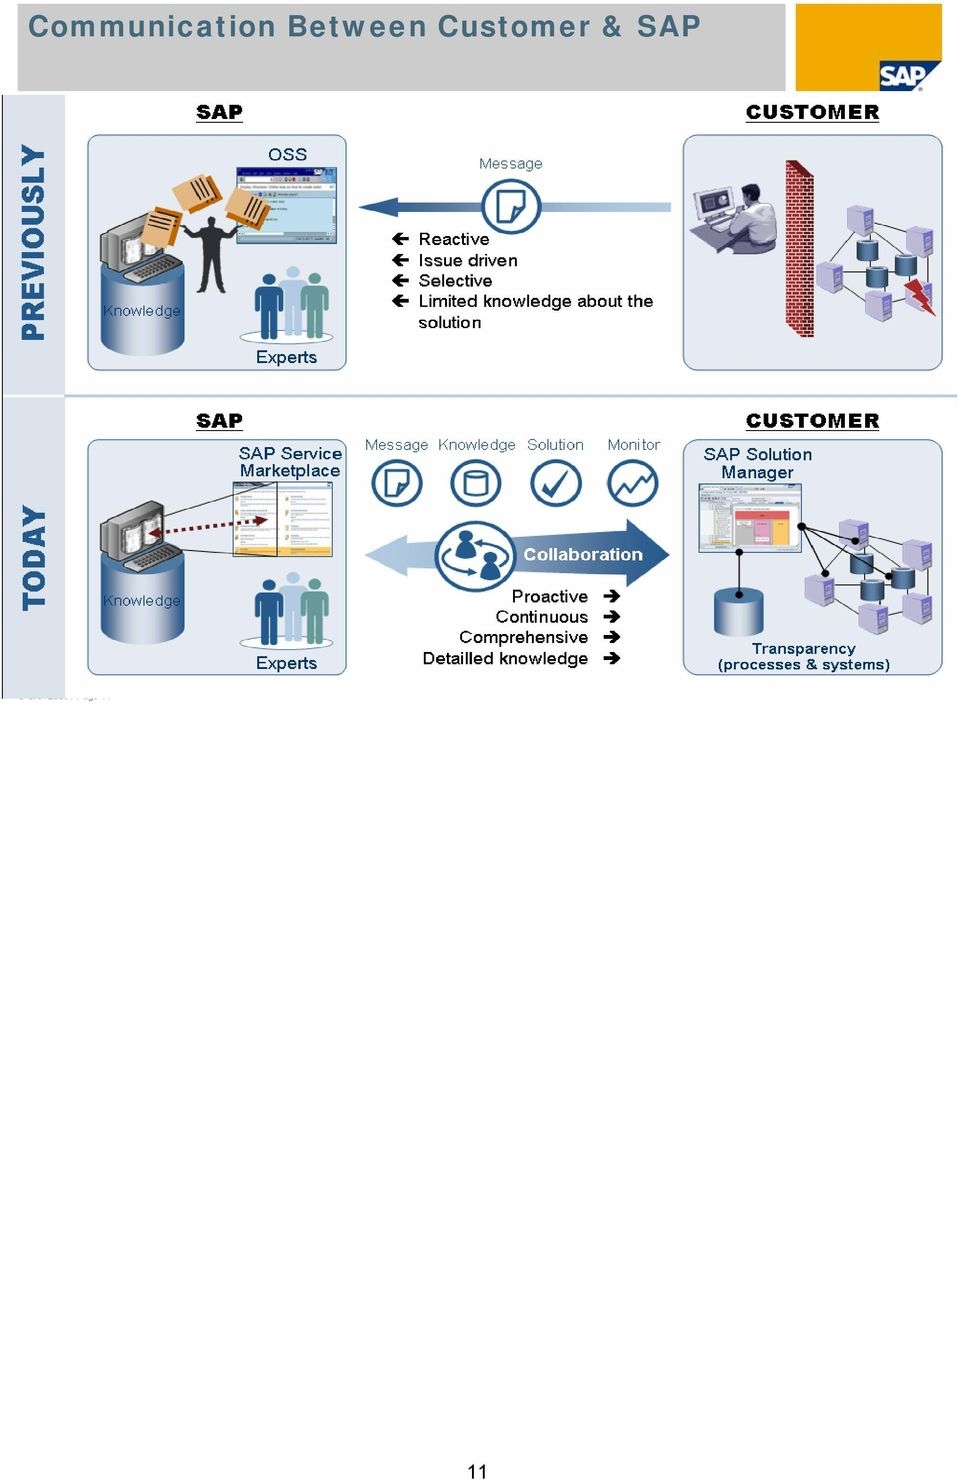 Customer & SAP